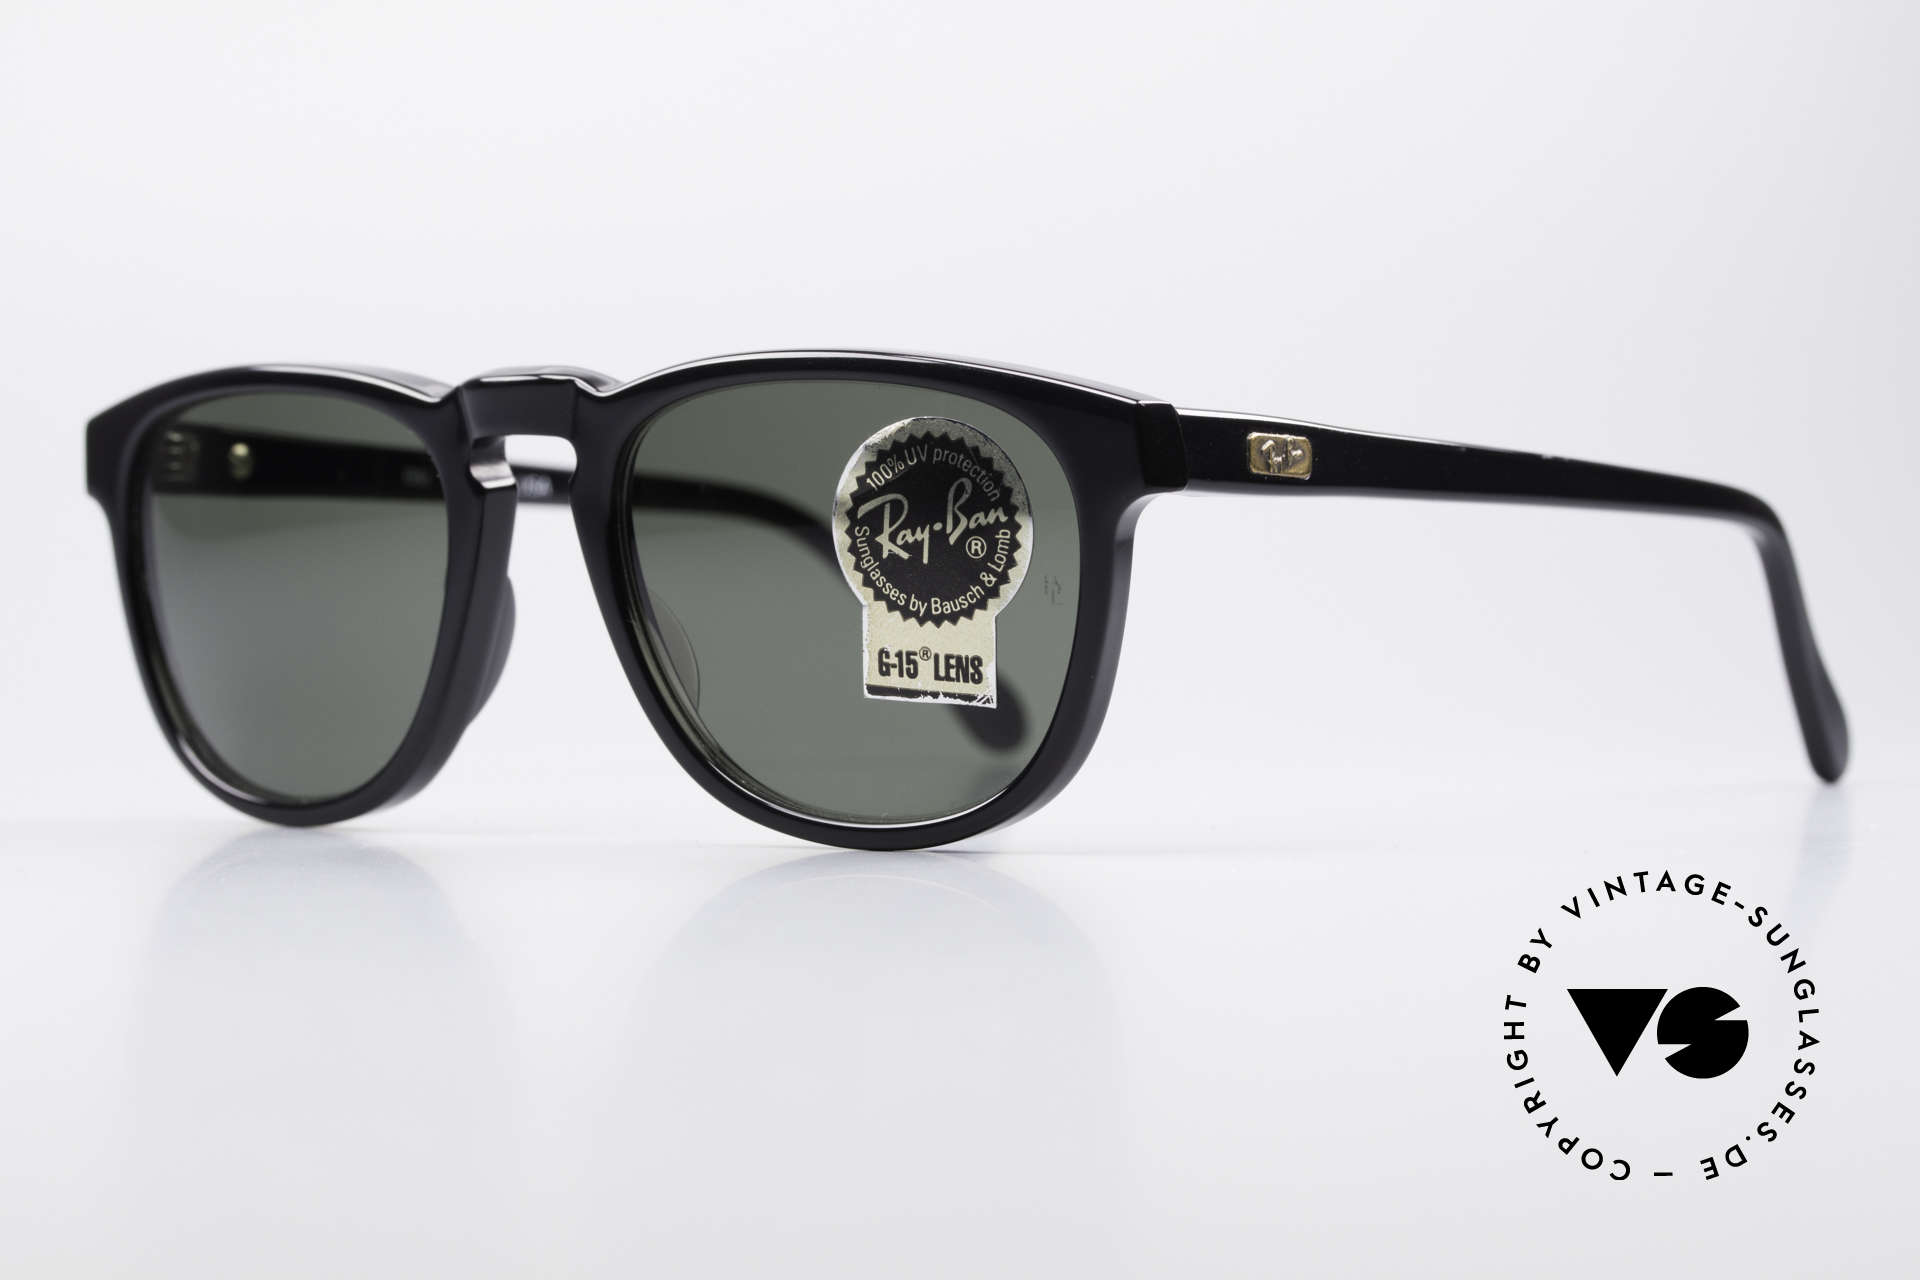 Ray Ban Gatsby Style 2 Old Ray Ban USA Sunglasses, legendary B&L mineral lenses, Bausch&Lomb, Made for Men and Women